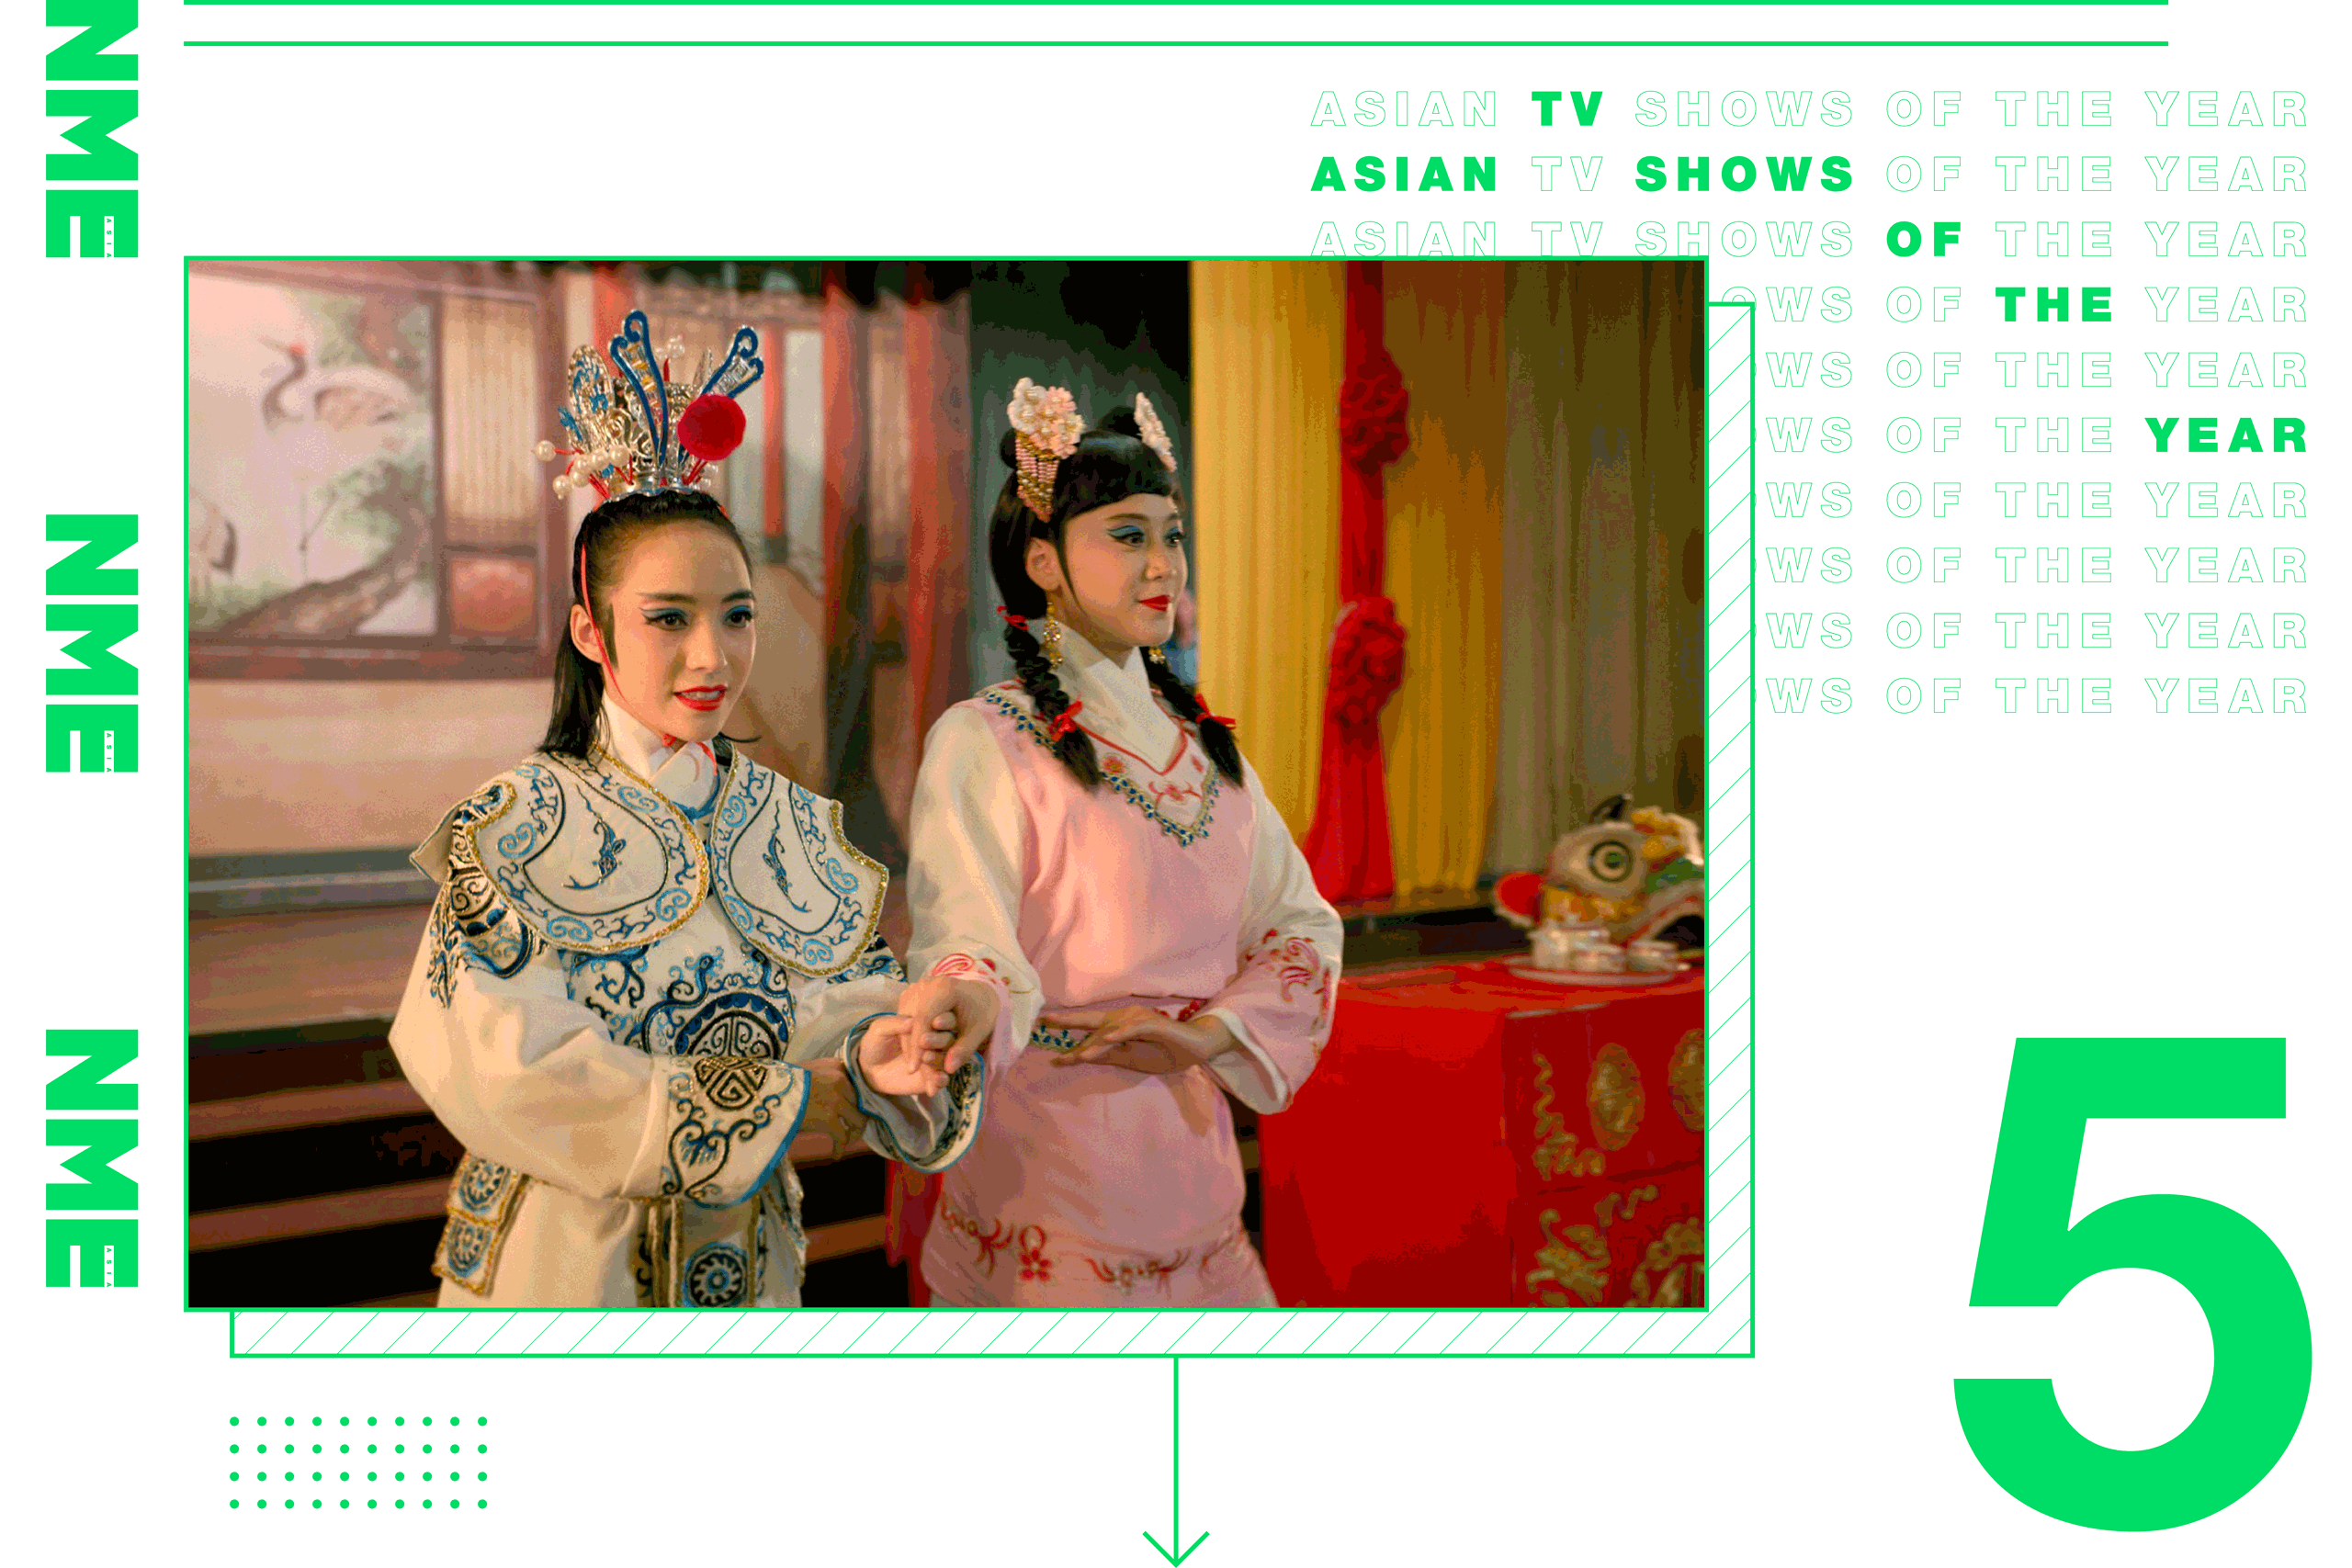 NME Asian TV Shows Of The Year Titoudao: Inspired By The True Story Of A Wayang Star